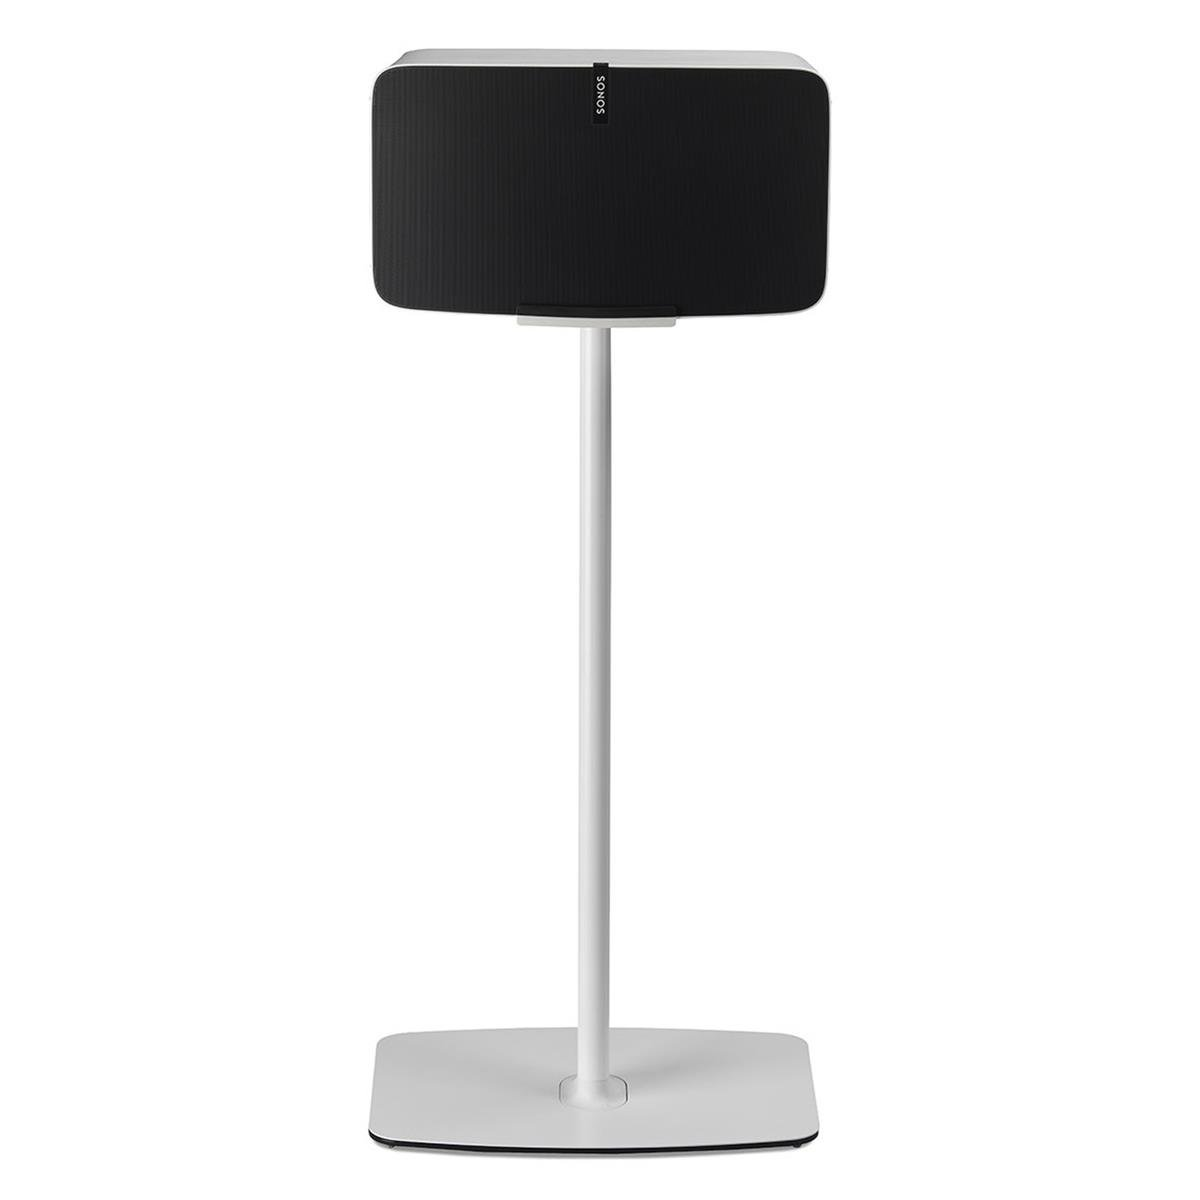 Flexson Floorstand for Sonos Play:5 Gen 2 in White (Horizontal, Single) by Flexson